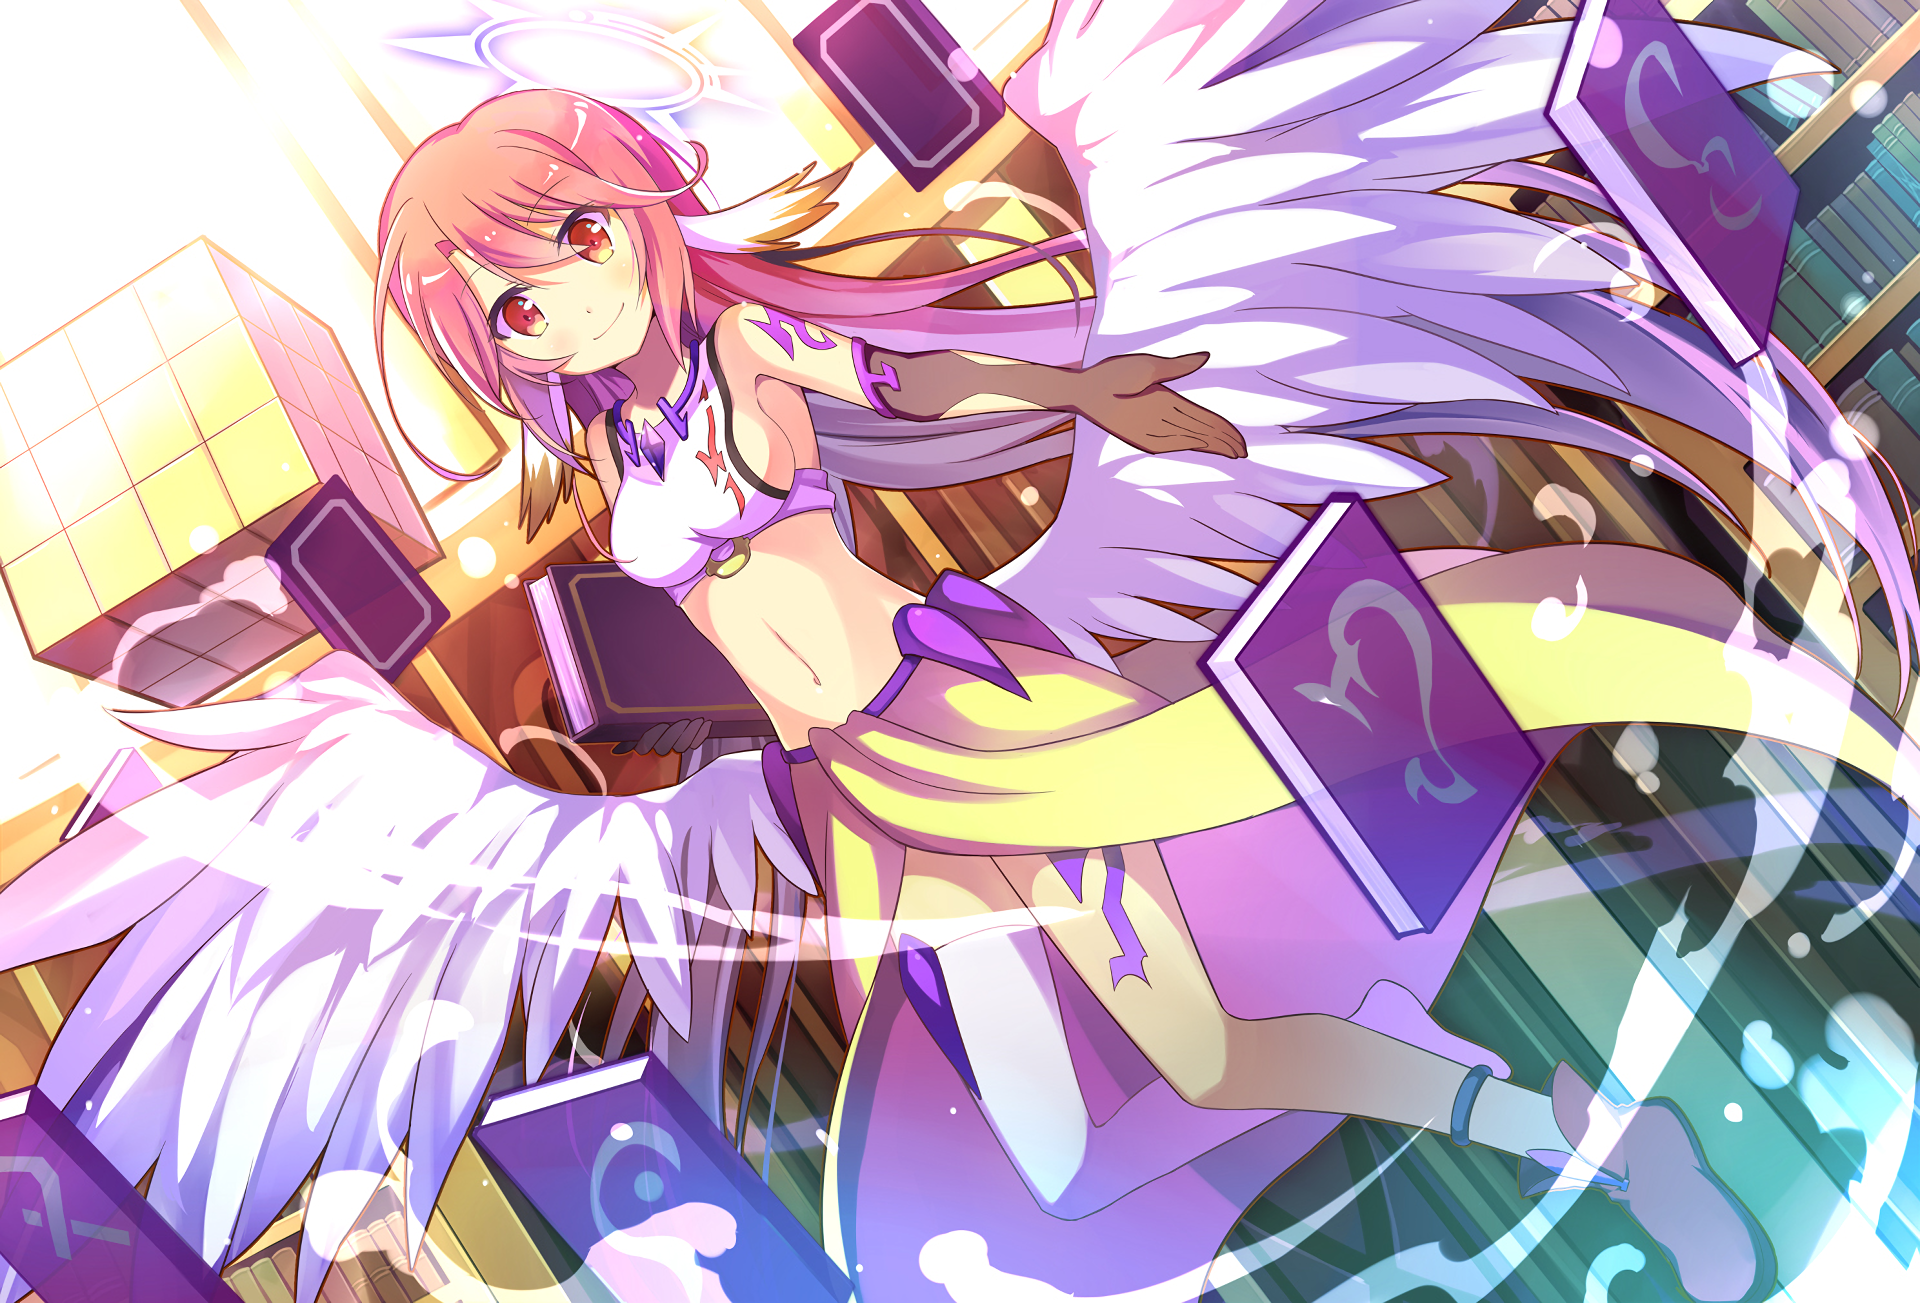 96 Jibril No Game No Life Hd Wallpapers Background